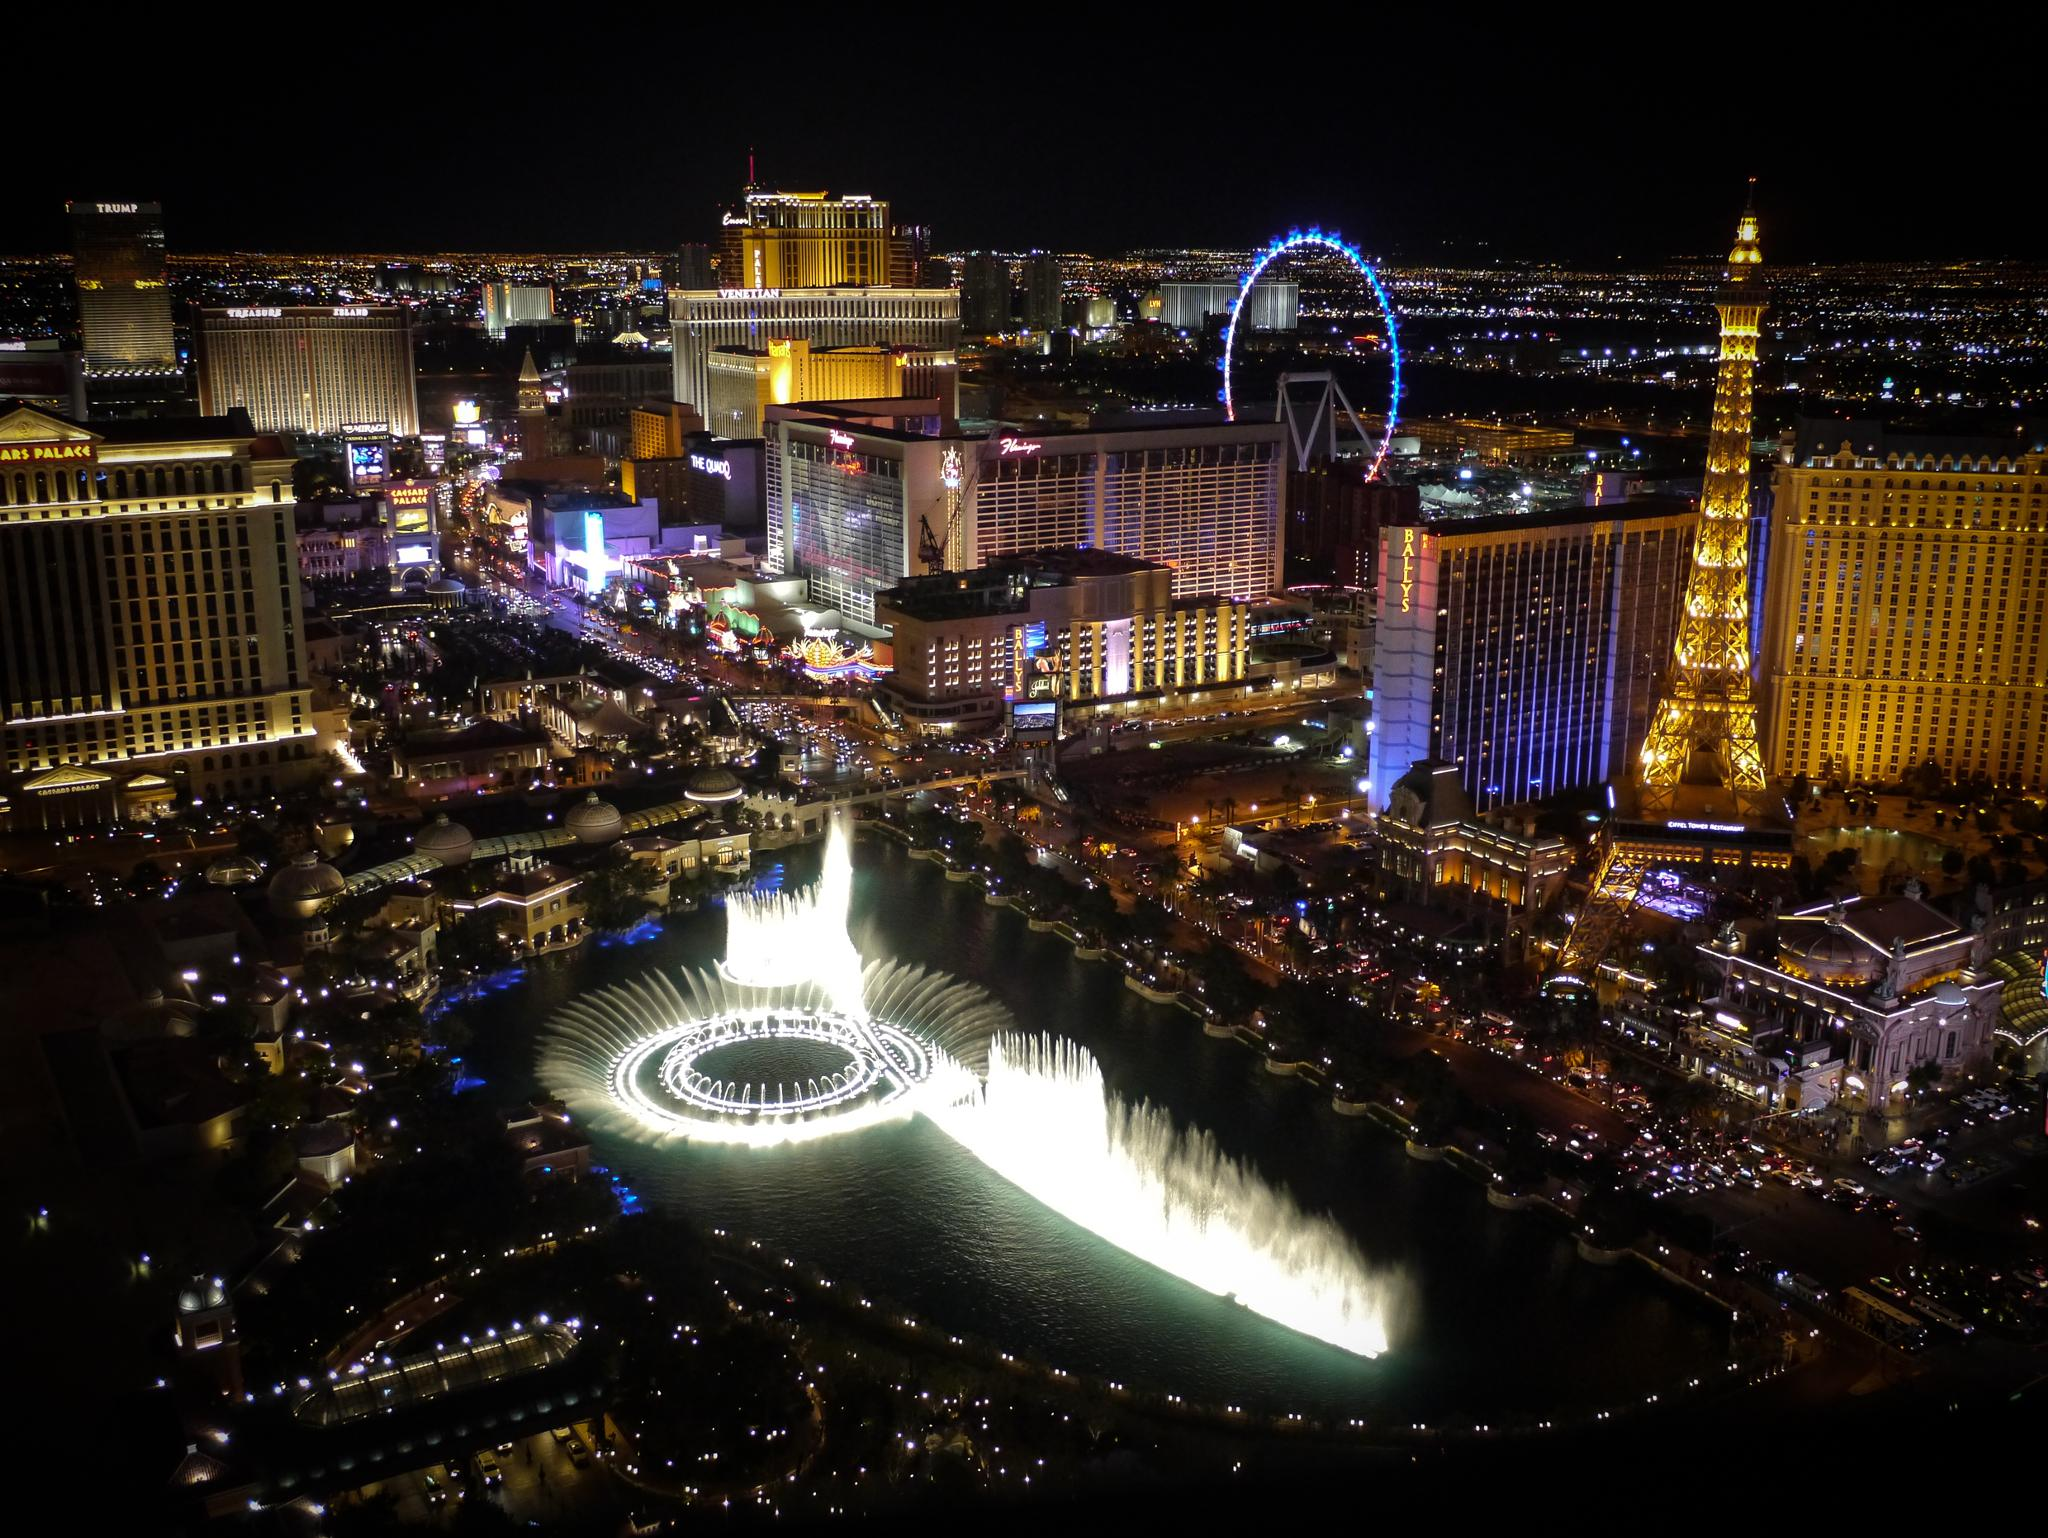 looking down on Vegas by Susan Strachan